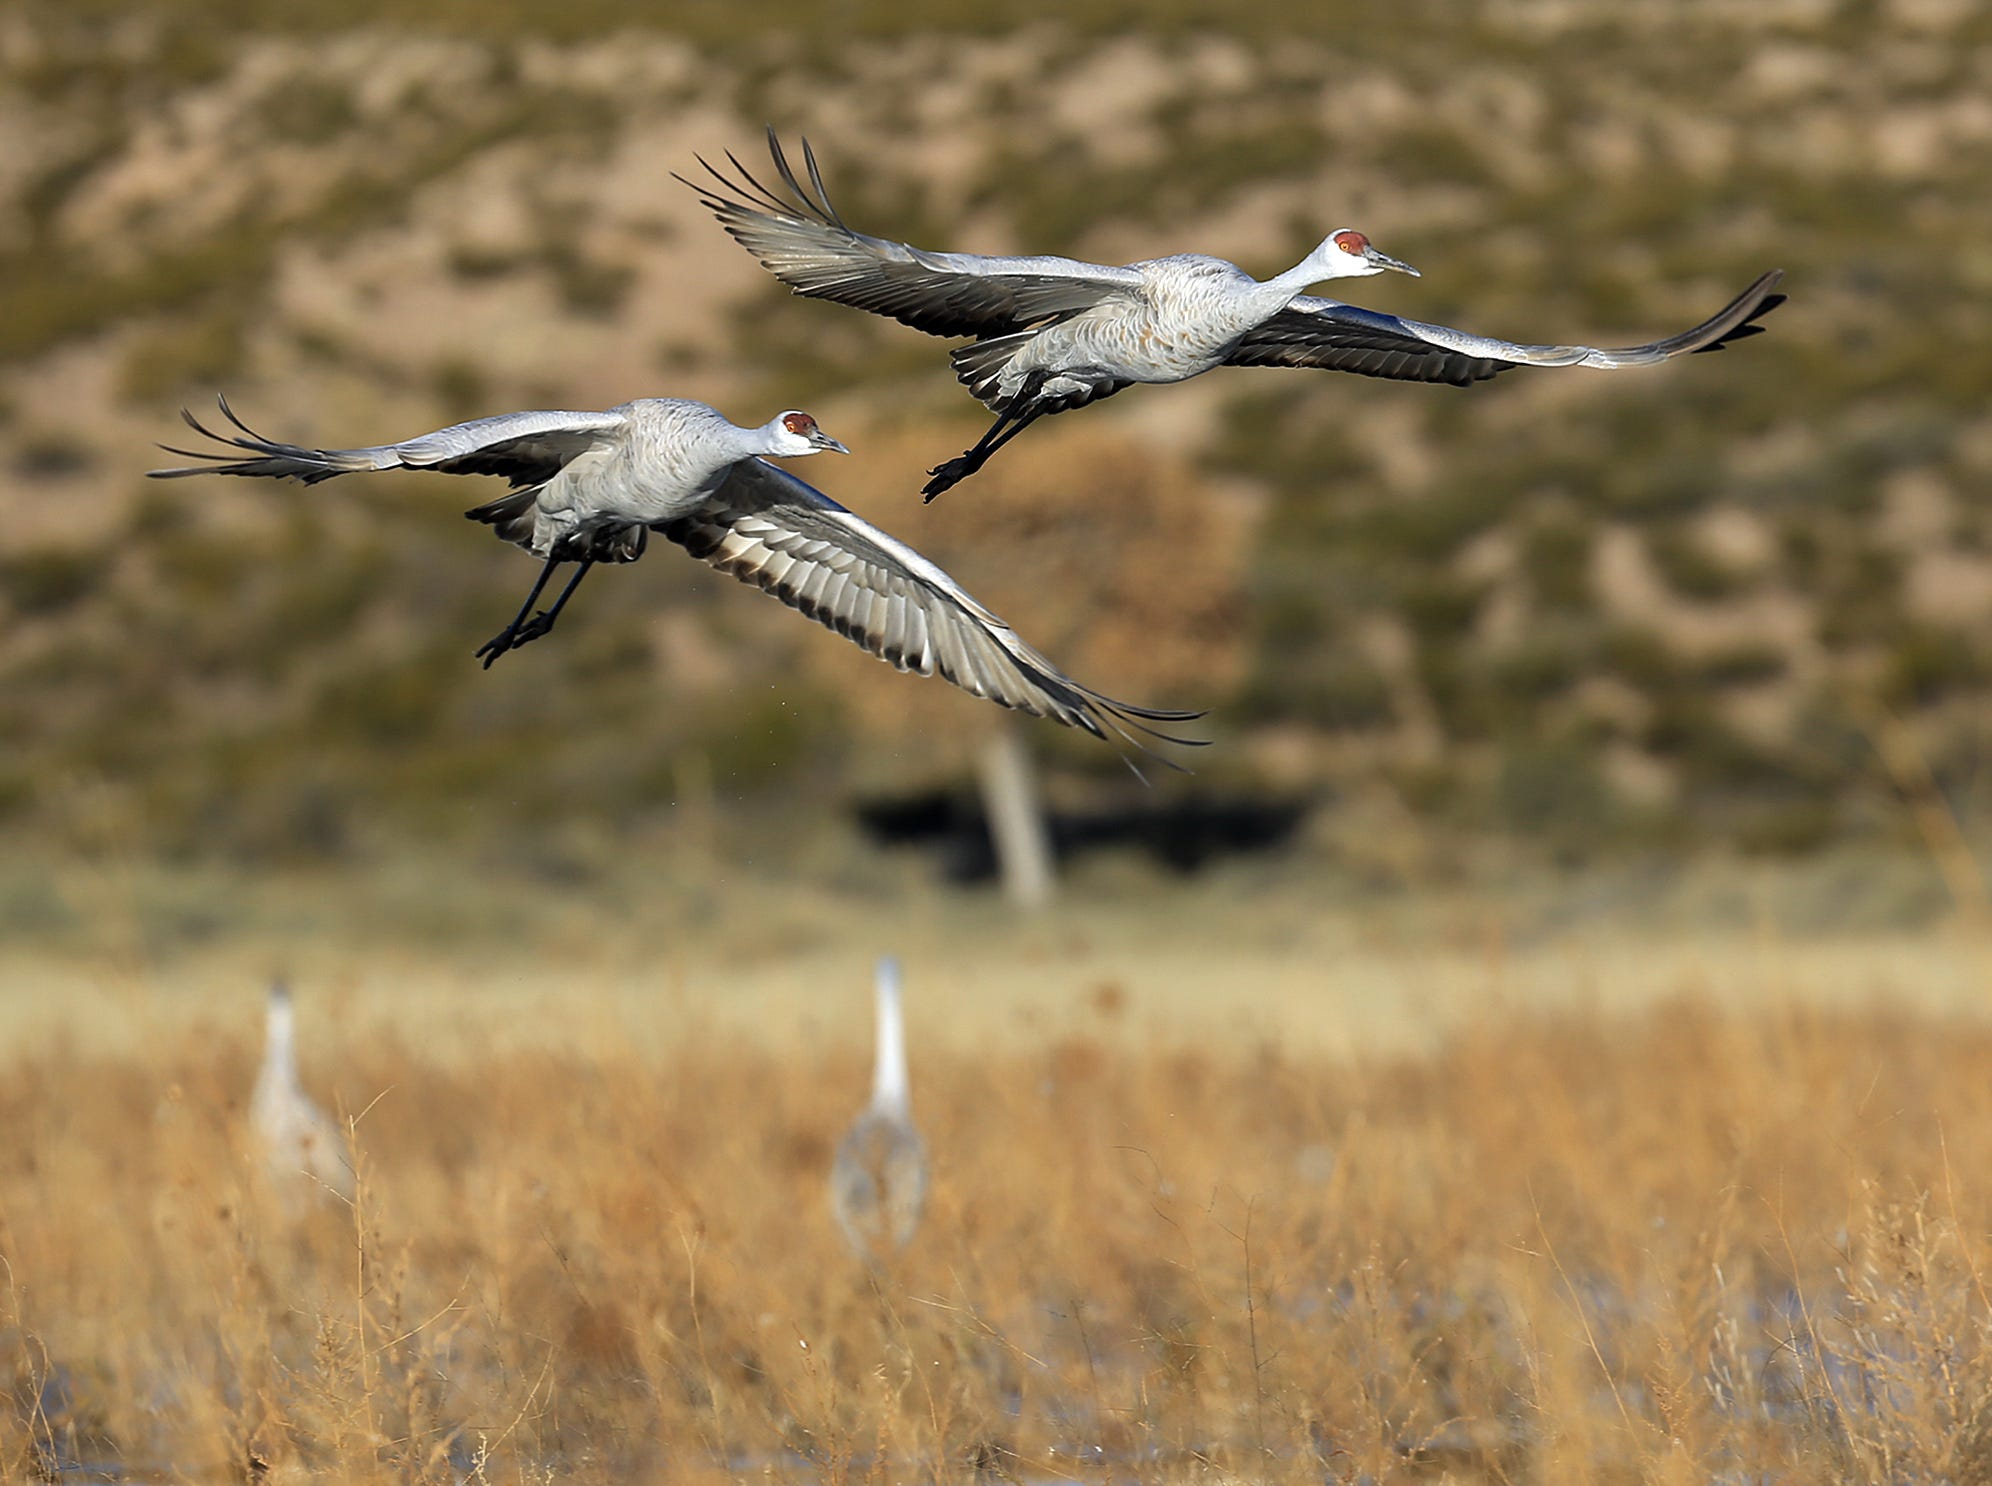 A pair of Sandhill Cranes come in for a landing in the Crane Pond at Bosque del Apache National Wildlife Refuge.